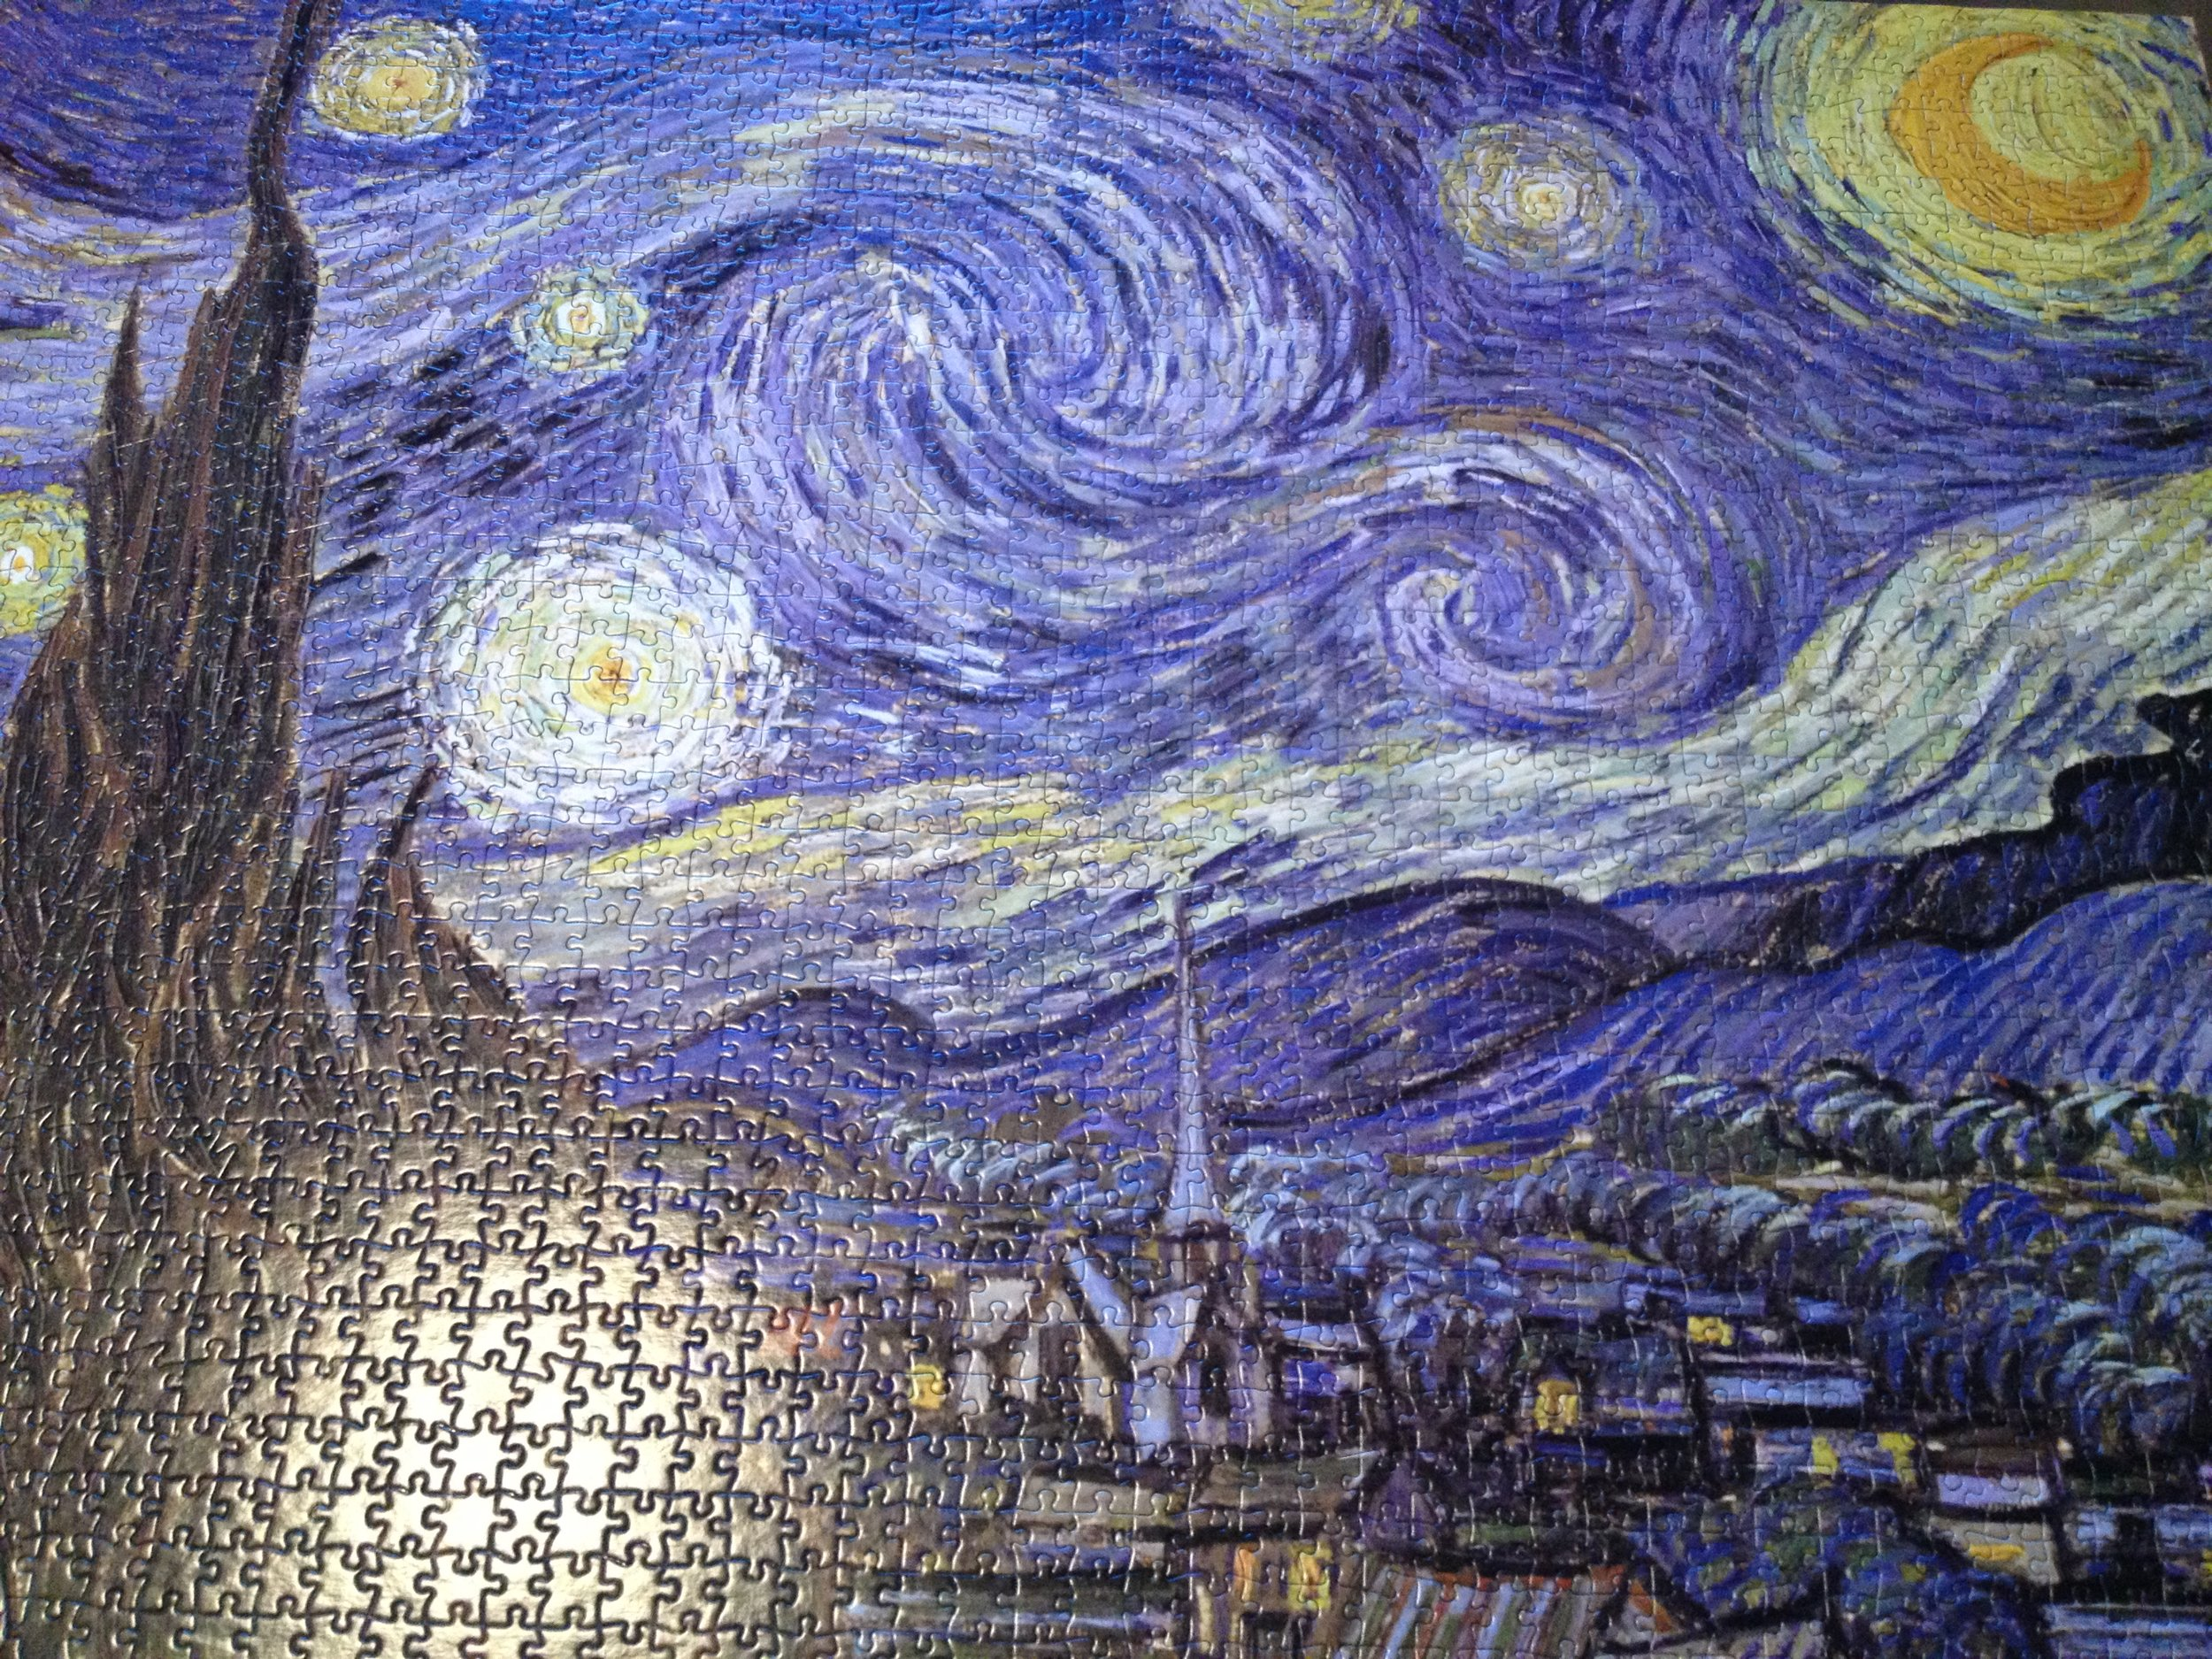 Finally completed 2,000 piece Starry Night puzzle.